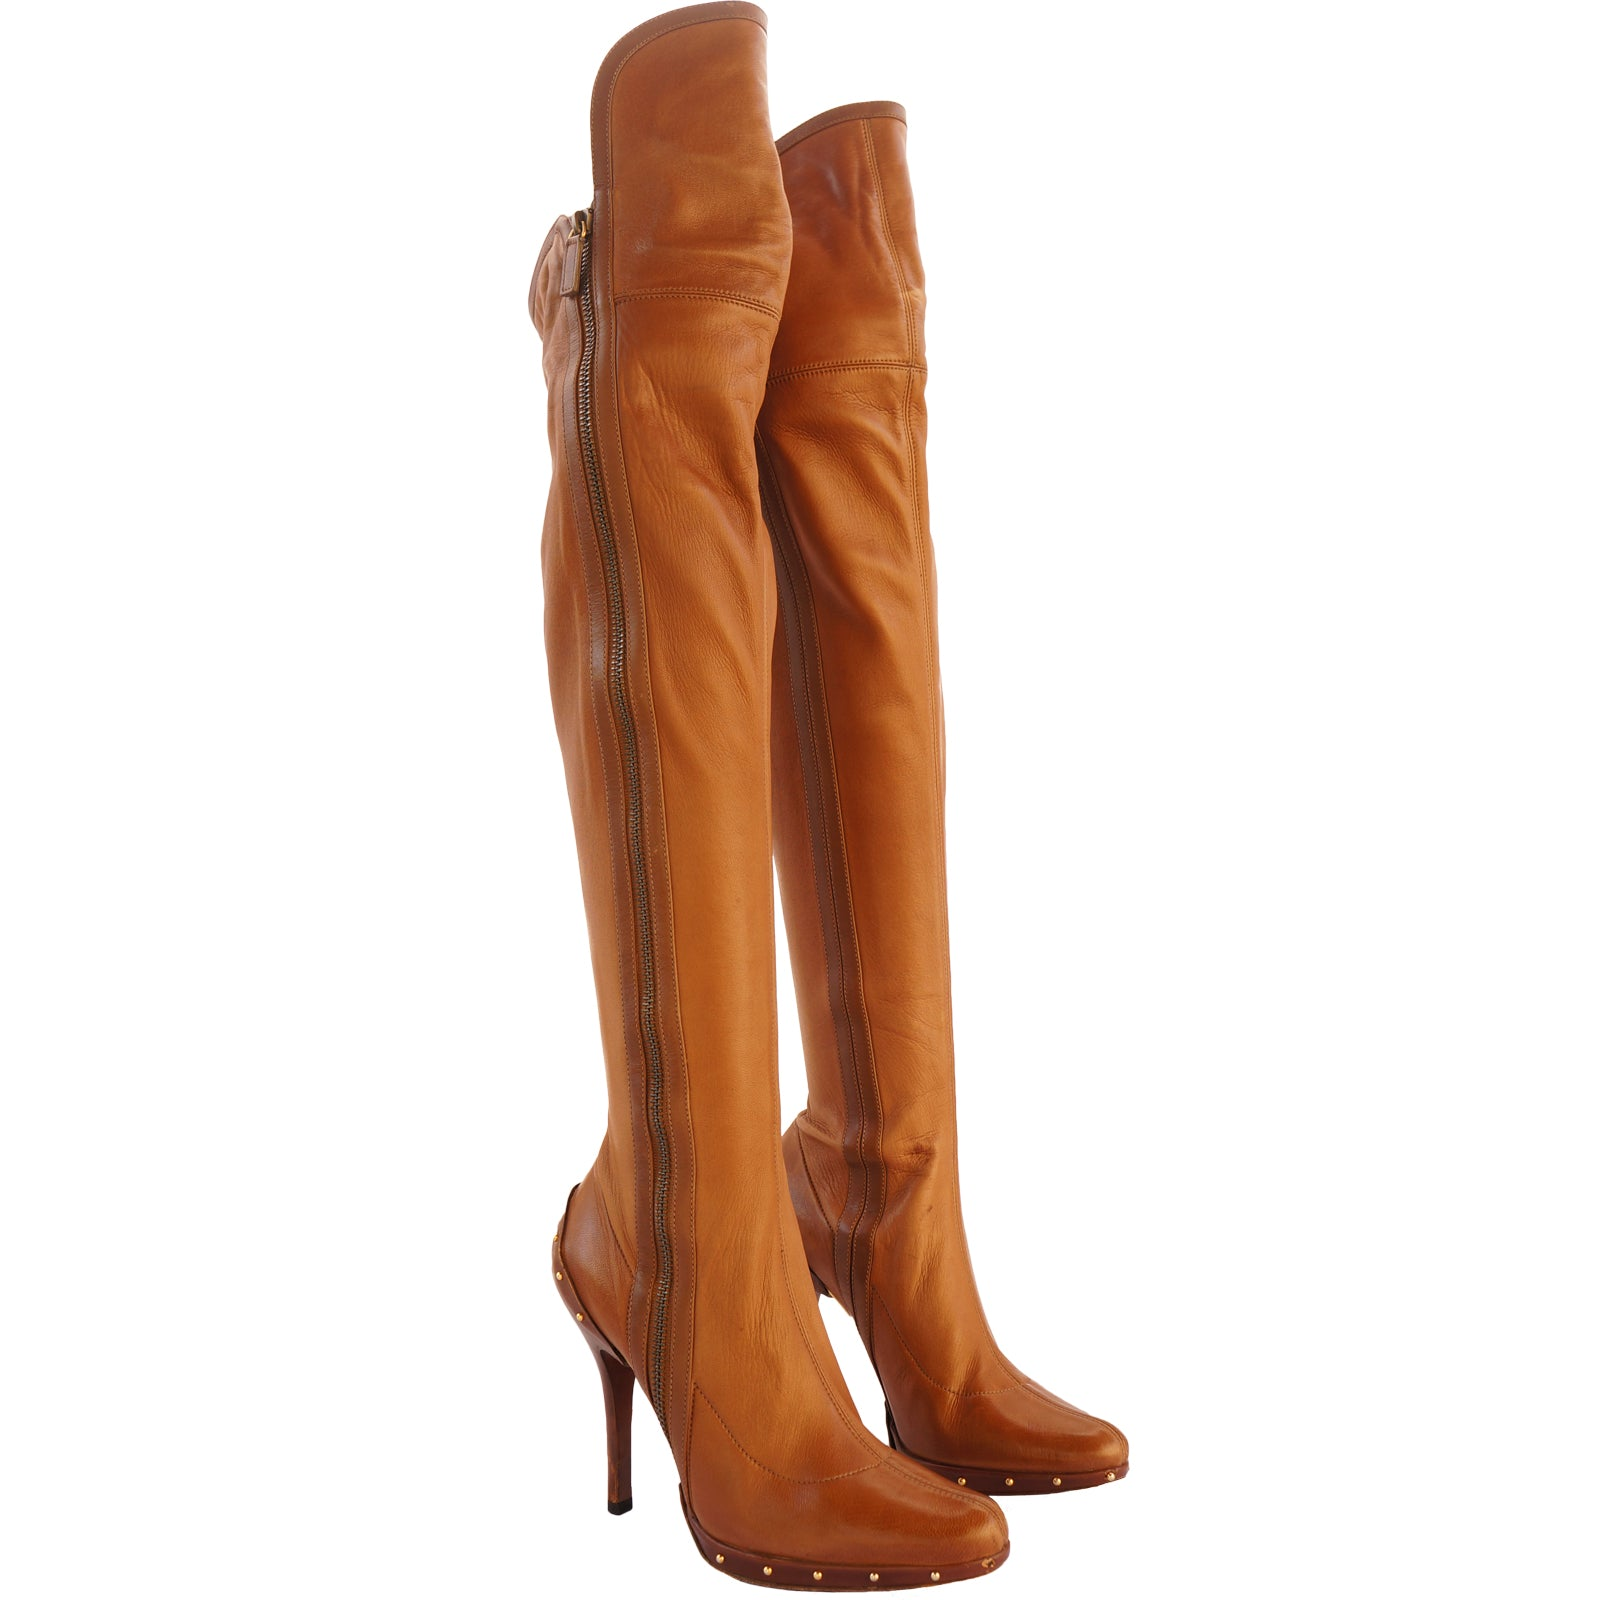 c3f7c454540 Gucci tom ford era over the knee boots jpg 1600x1600 Tom ford over the knee  boots